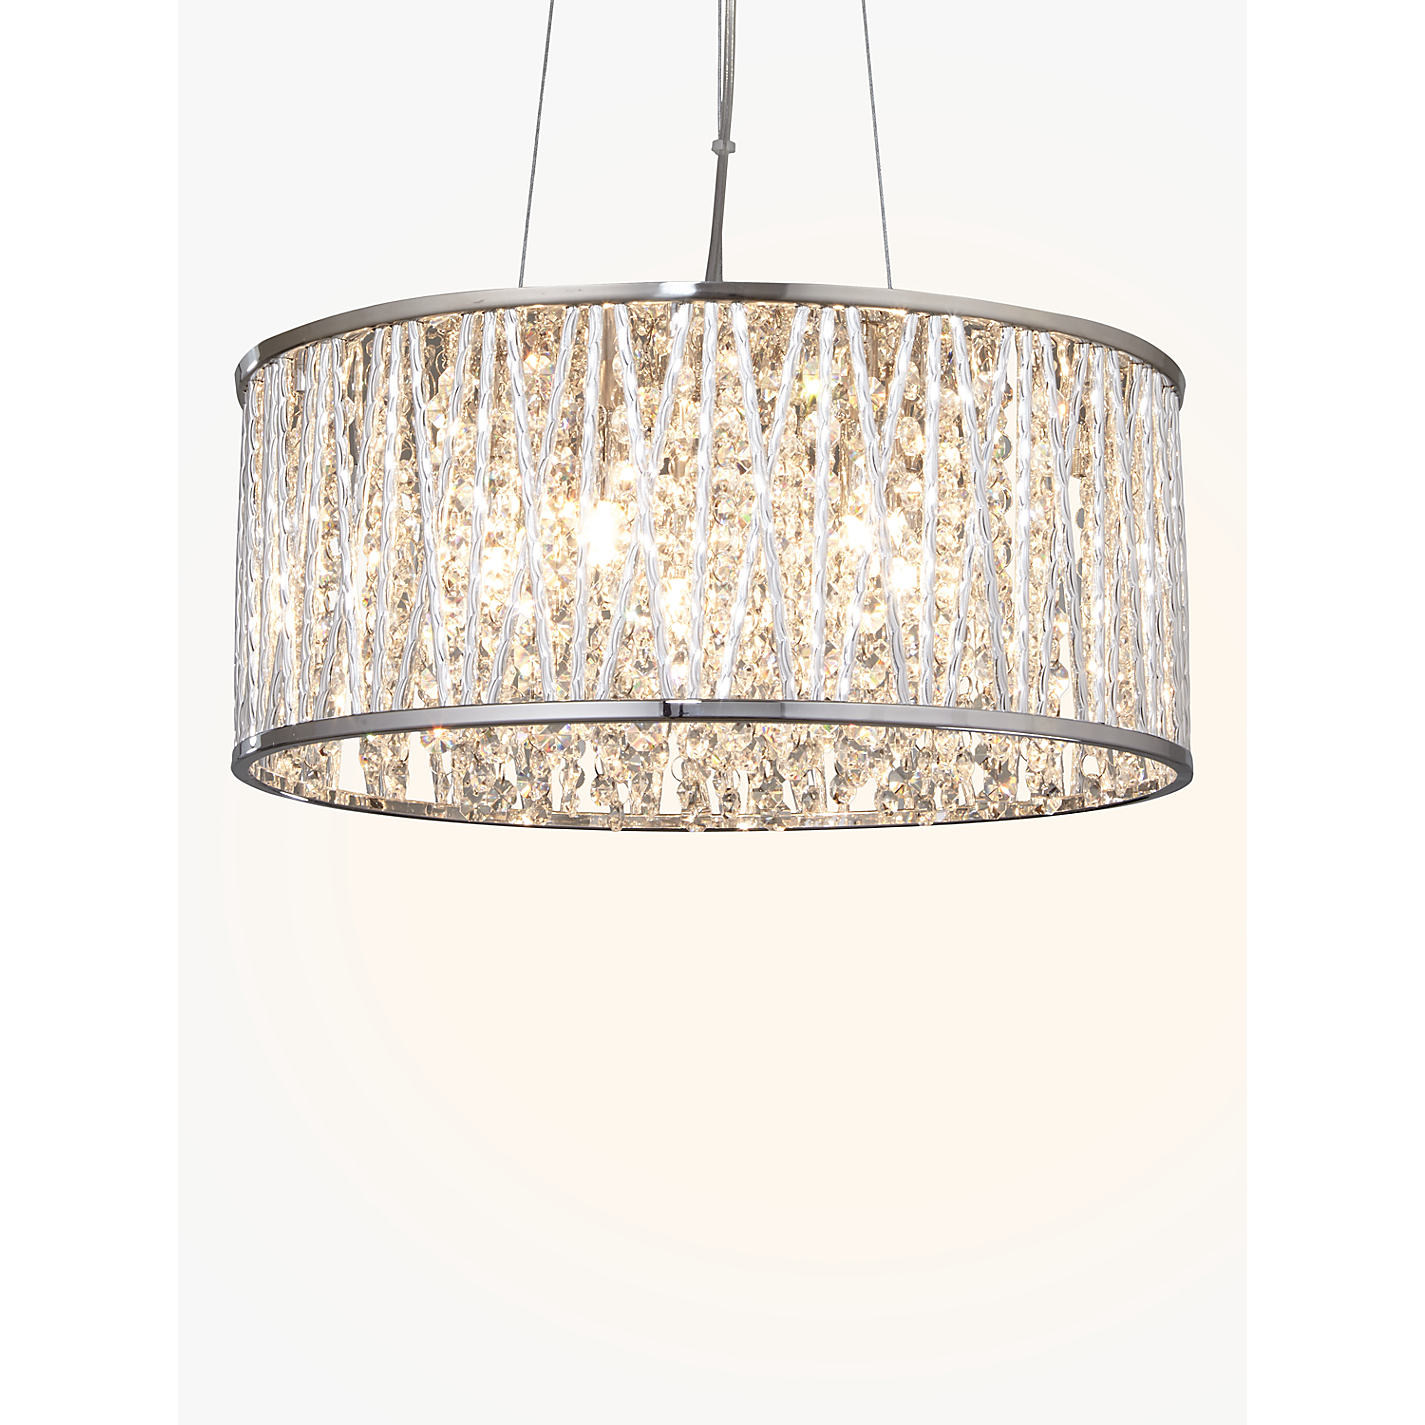 buy pendant lighting. buy john lewis emilia drum crystal pendant light online at johnlewiscom lighting d